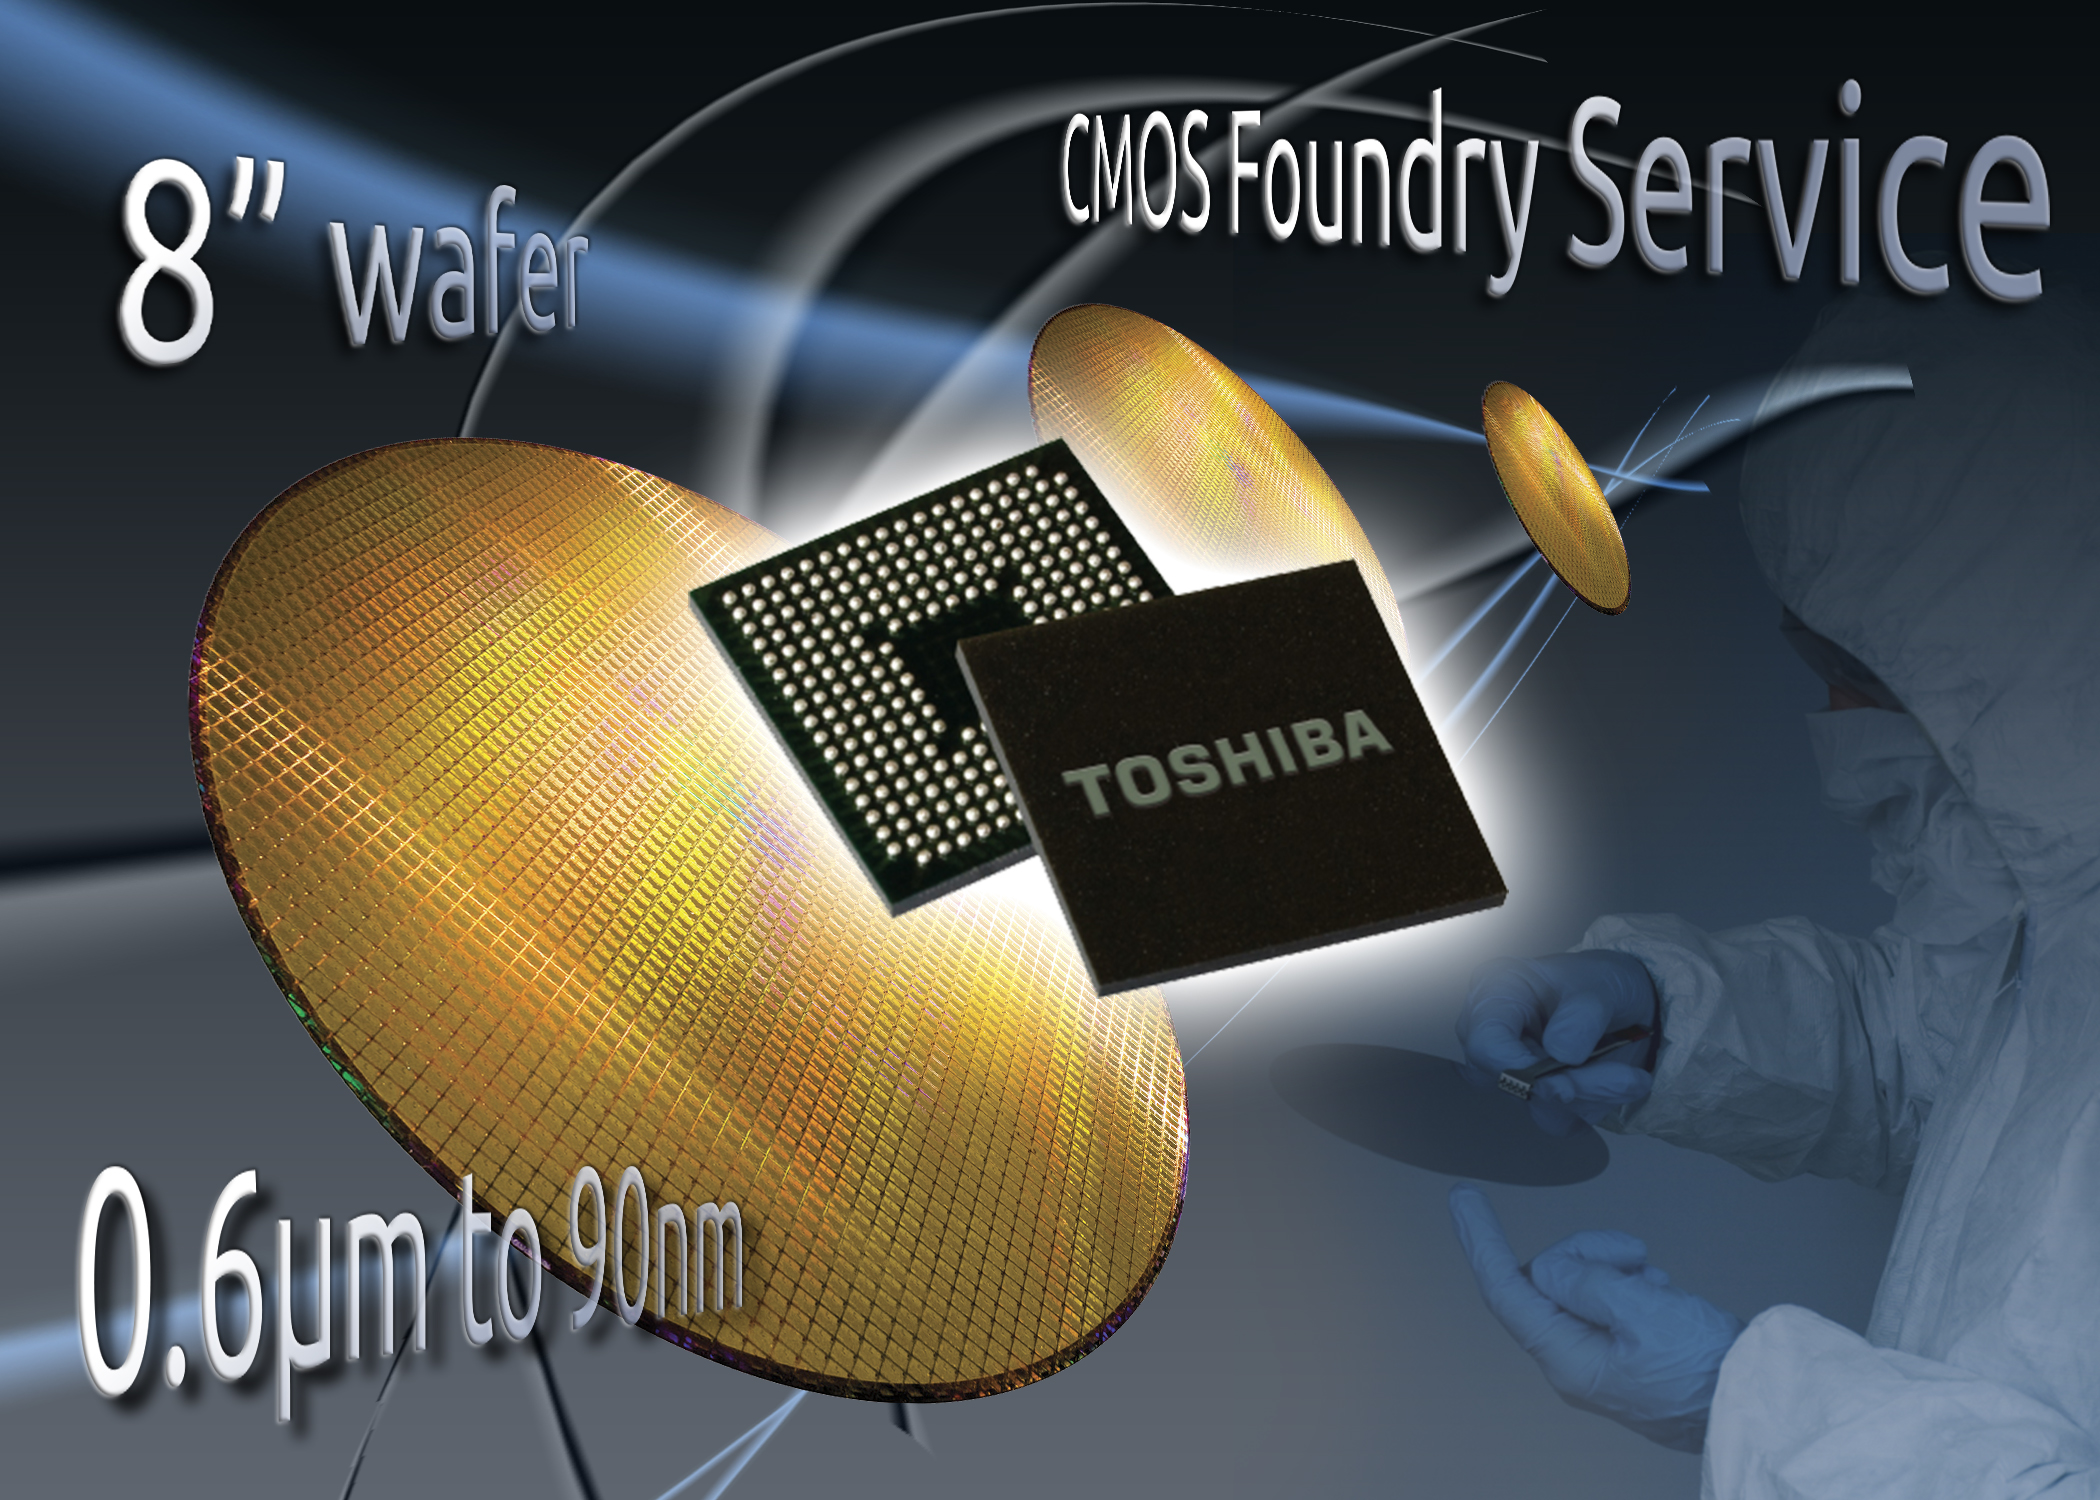 Europe offered flexible CMOS development and foundry service by Toshiba